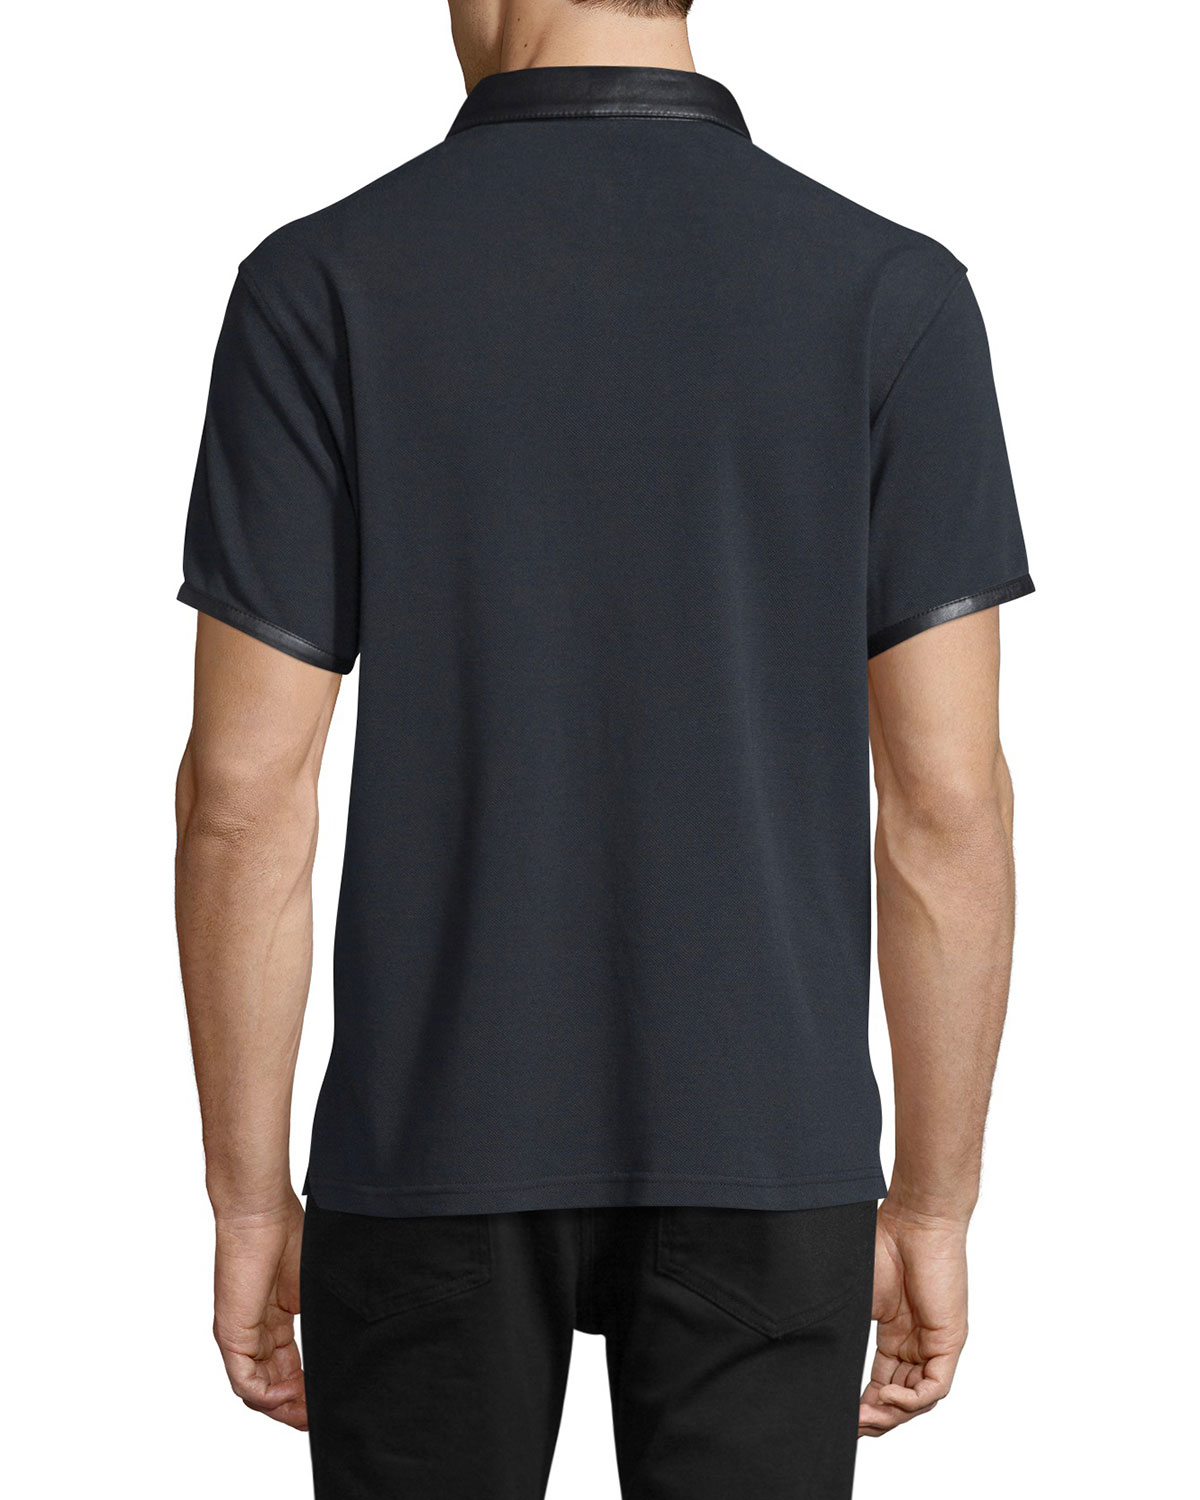 So we knew it was the ideal fabric from which to craft a classic men's field shirt. Detailed with leather elbow patches, pocket pen holder, and locker loop, this shirt offers true field functionality with the familiar fit you've come to expect. In British tan. Pure cotton. Washable. Imported. Sizes M(), L(), XL(), XXL().